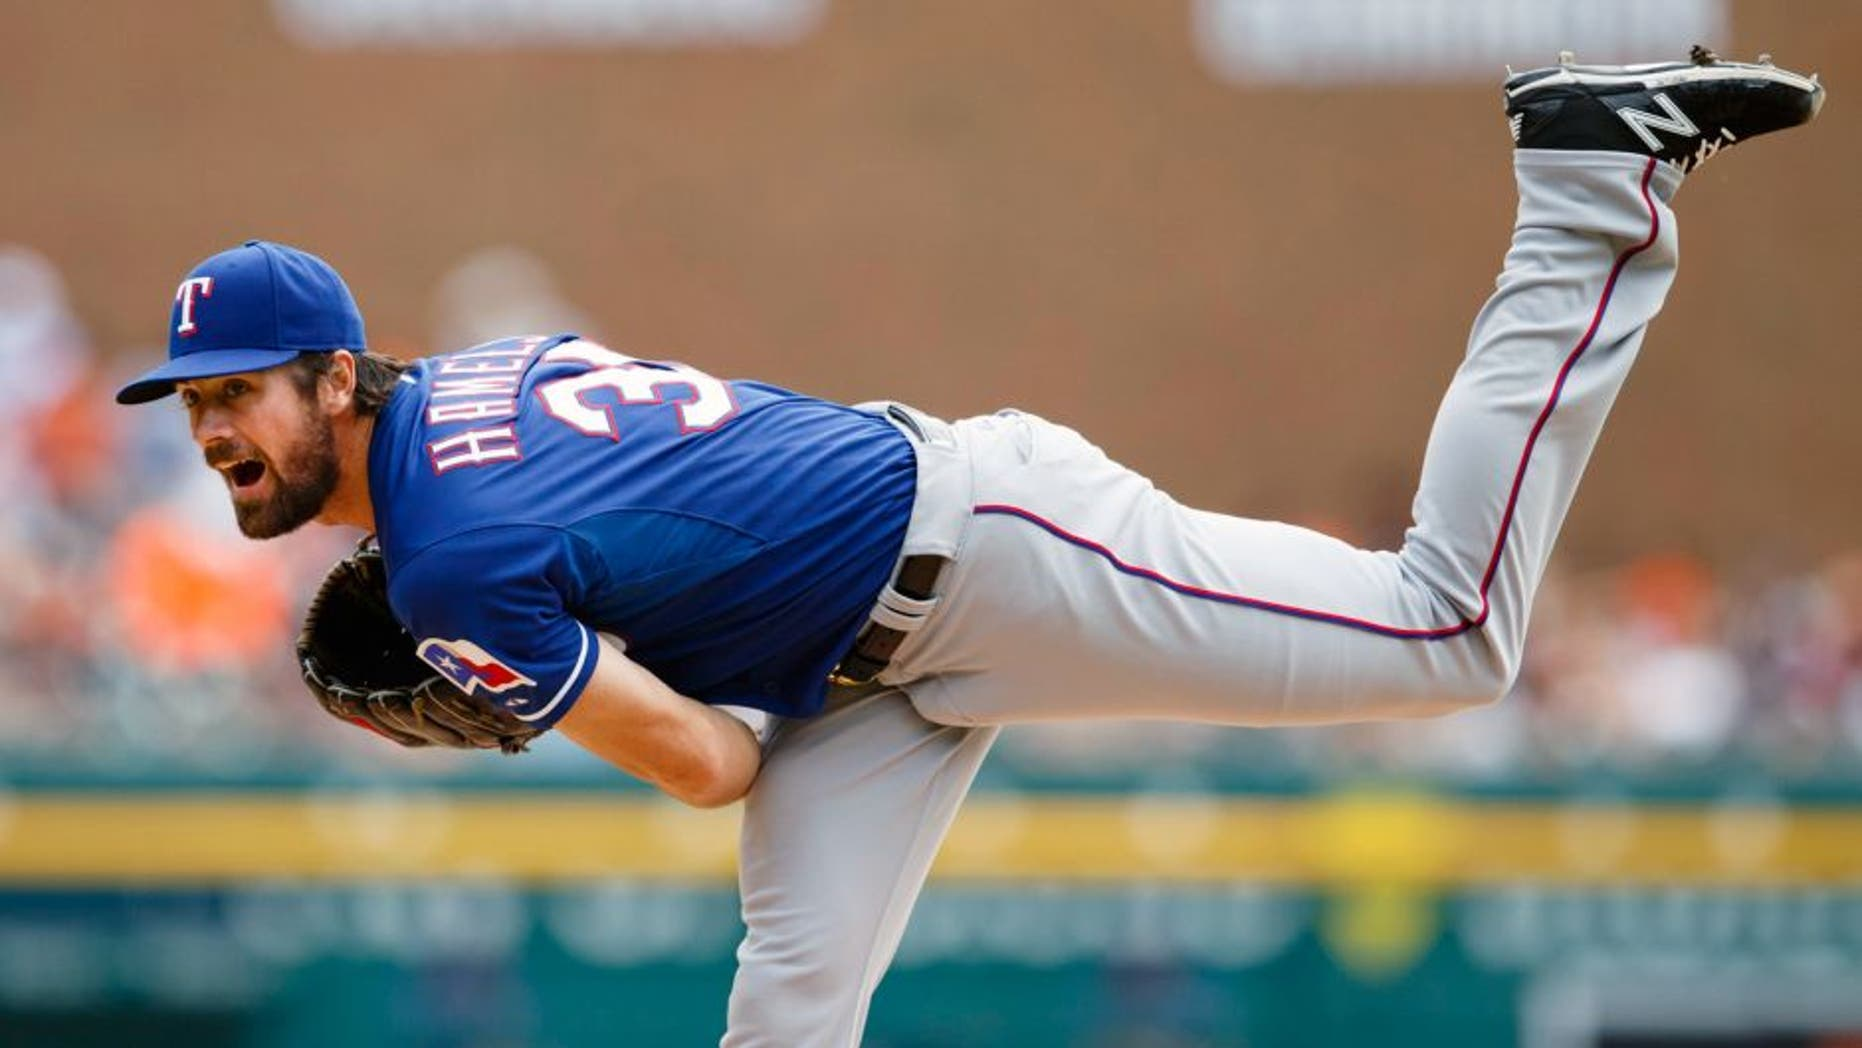 Aug 23, 2015; Detroit, MI, USA; Texas Rangers starting pitcher Cole Hamels (35) pitches in the first inning against the Detroit Tigers at Comerica Park. Mandatory Credit: Rick Osentoski-USA TODAY Sports